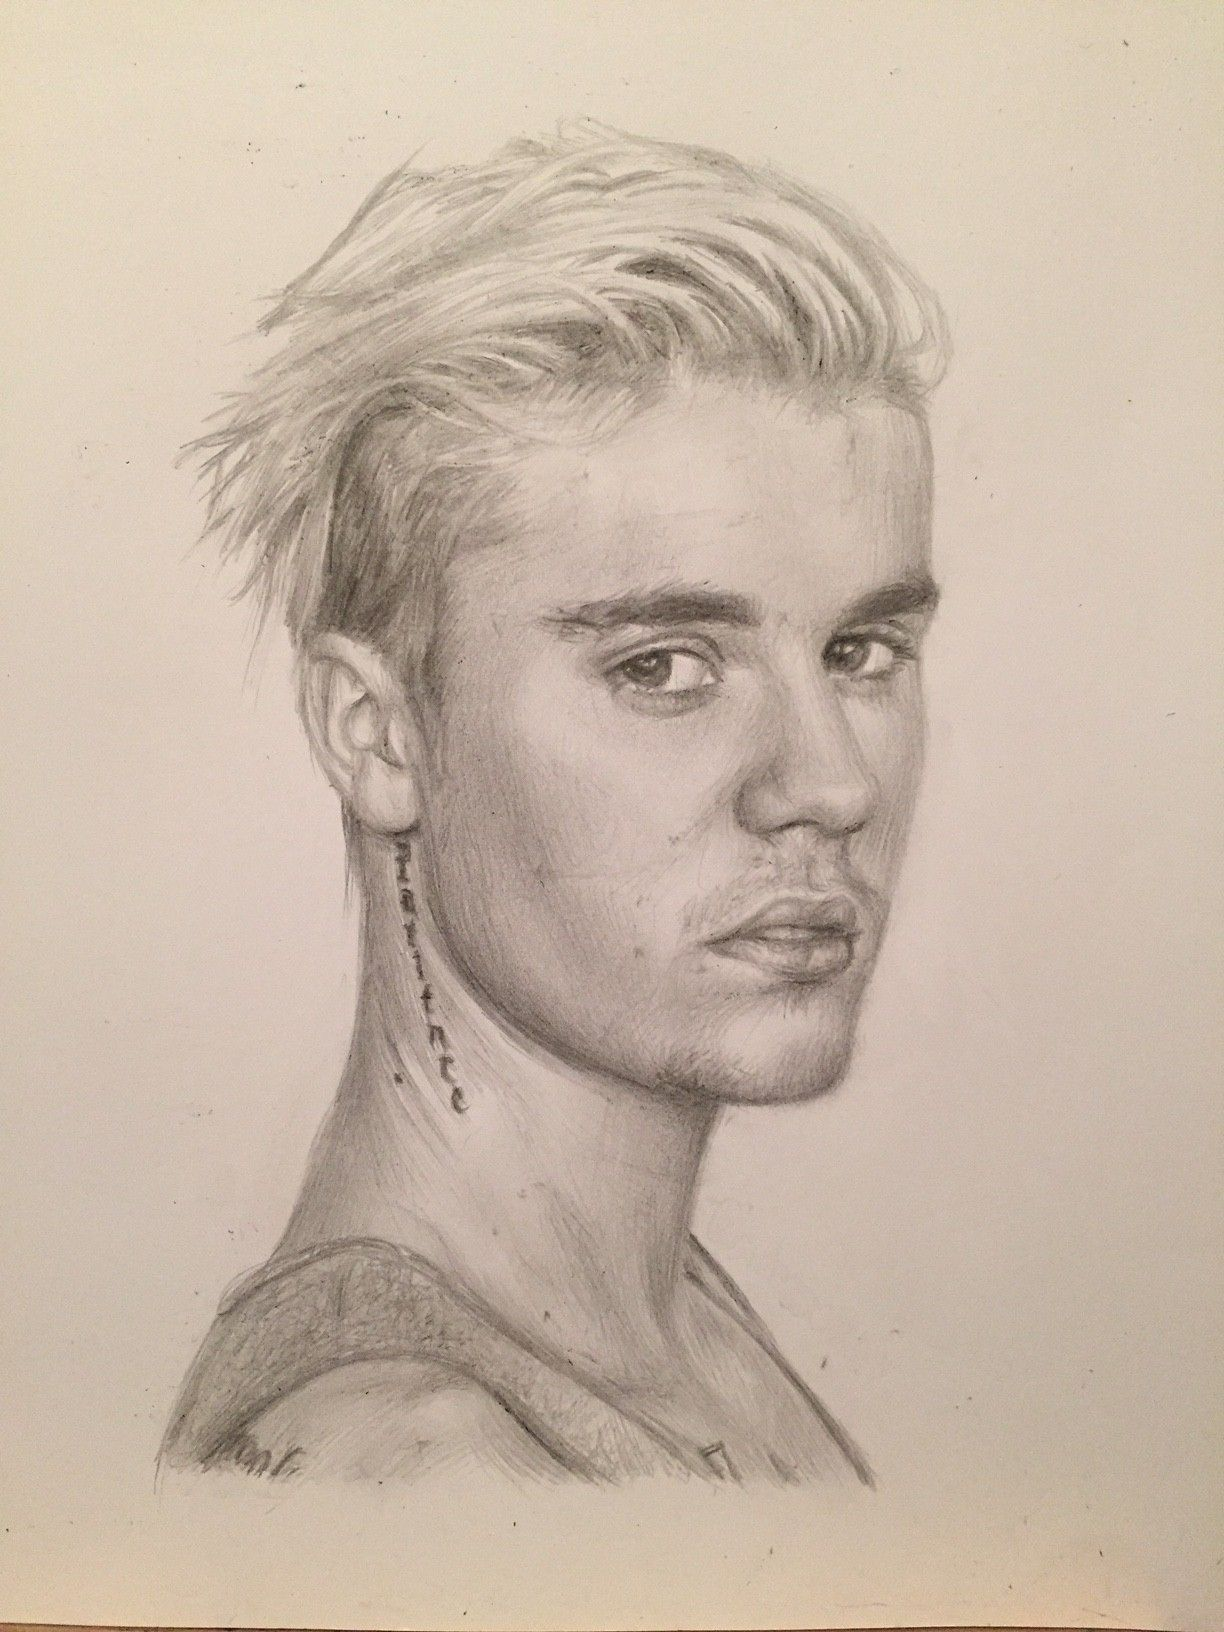 Coloring pages of justin bieber - Justin Bieber Drawing By Charlotte Oxenham